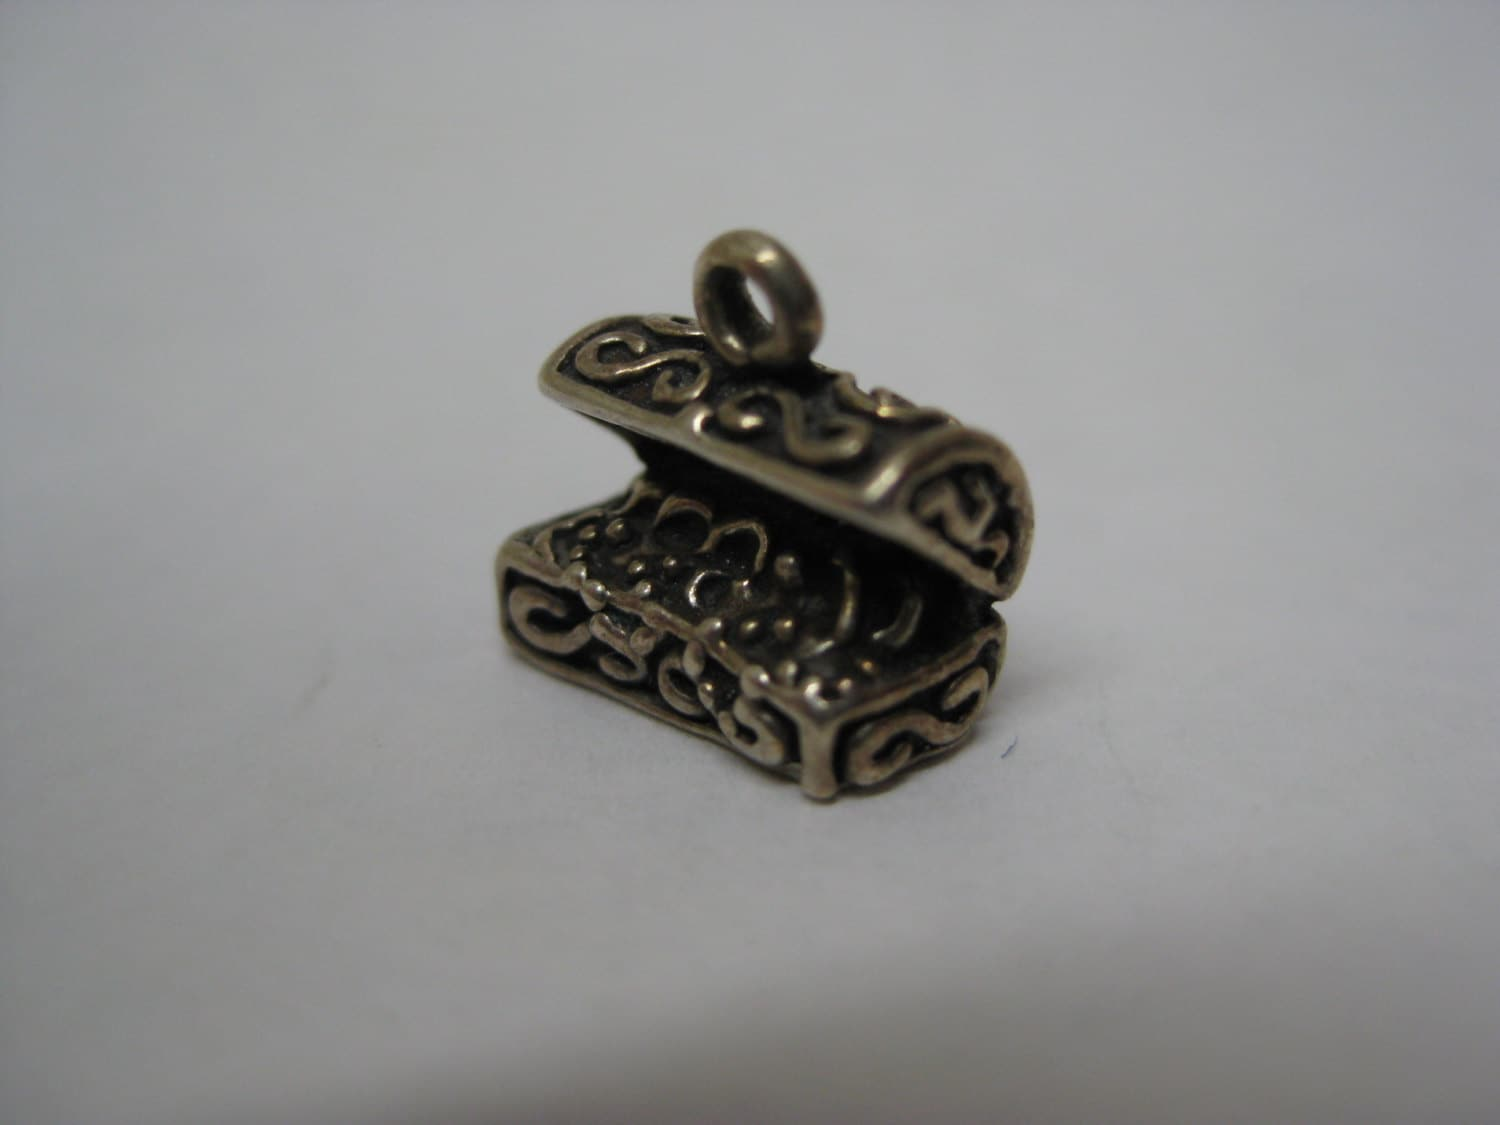 treasure chest sterling silver charm vintage 925